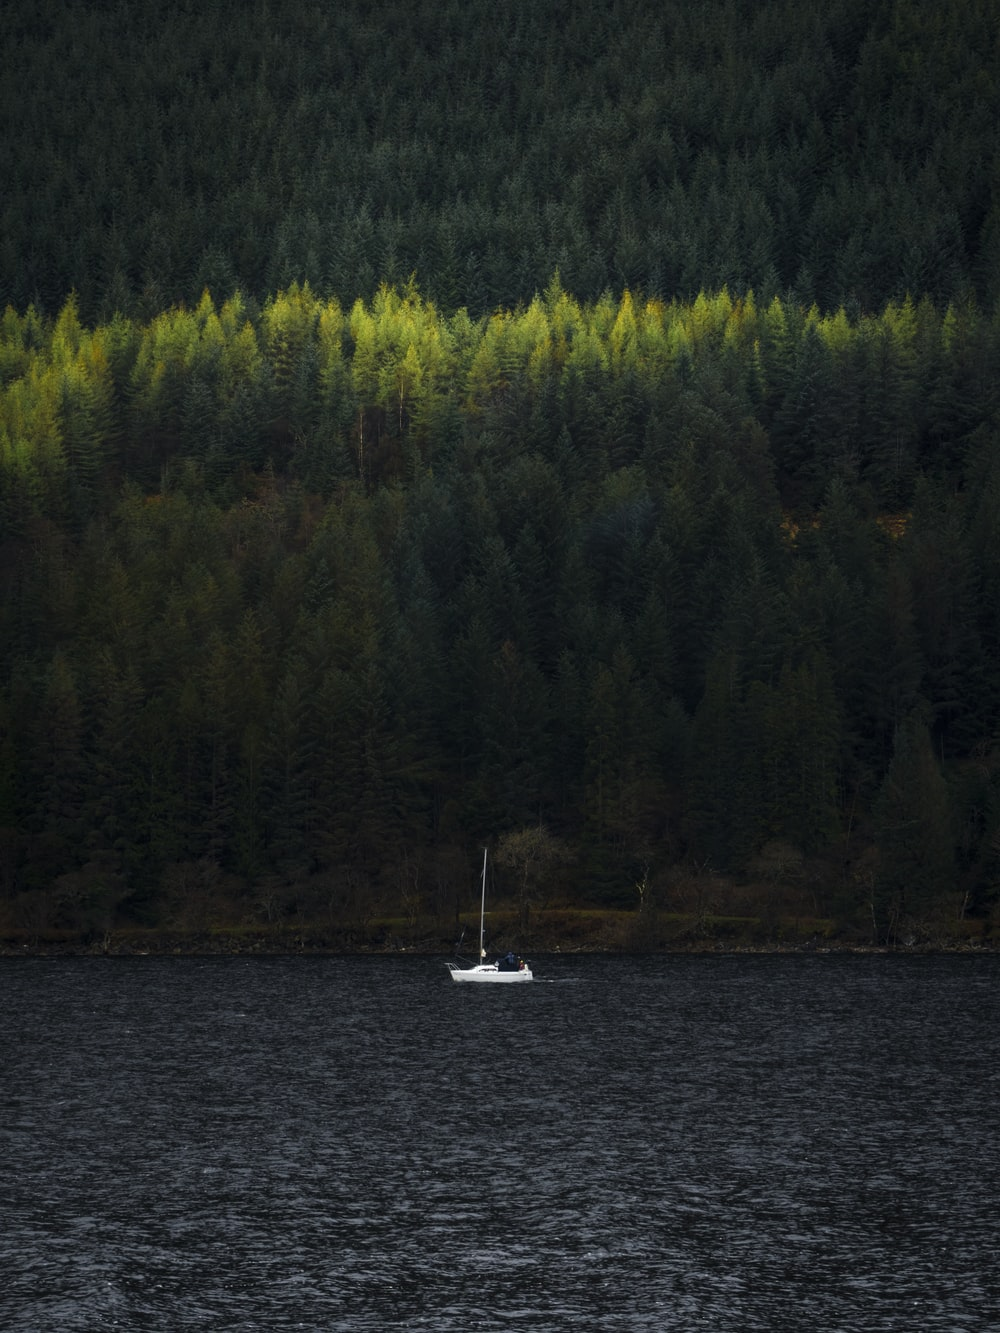 sailing boat in body of water